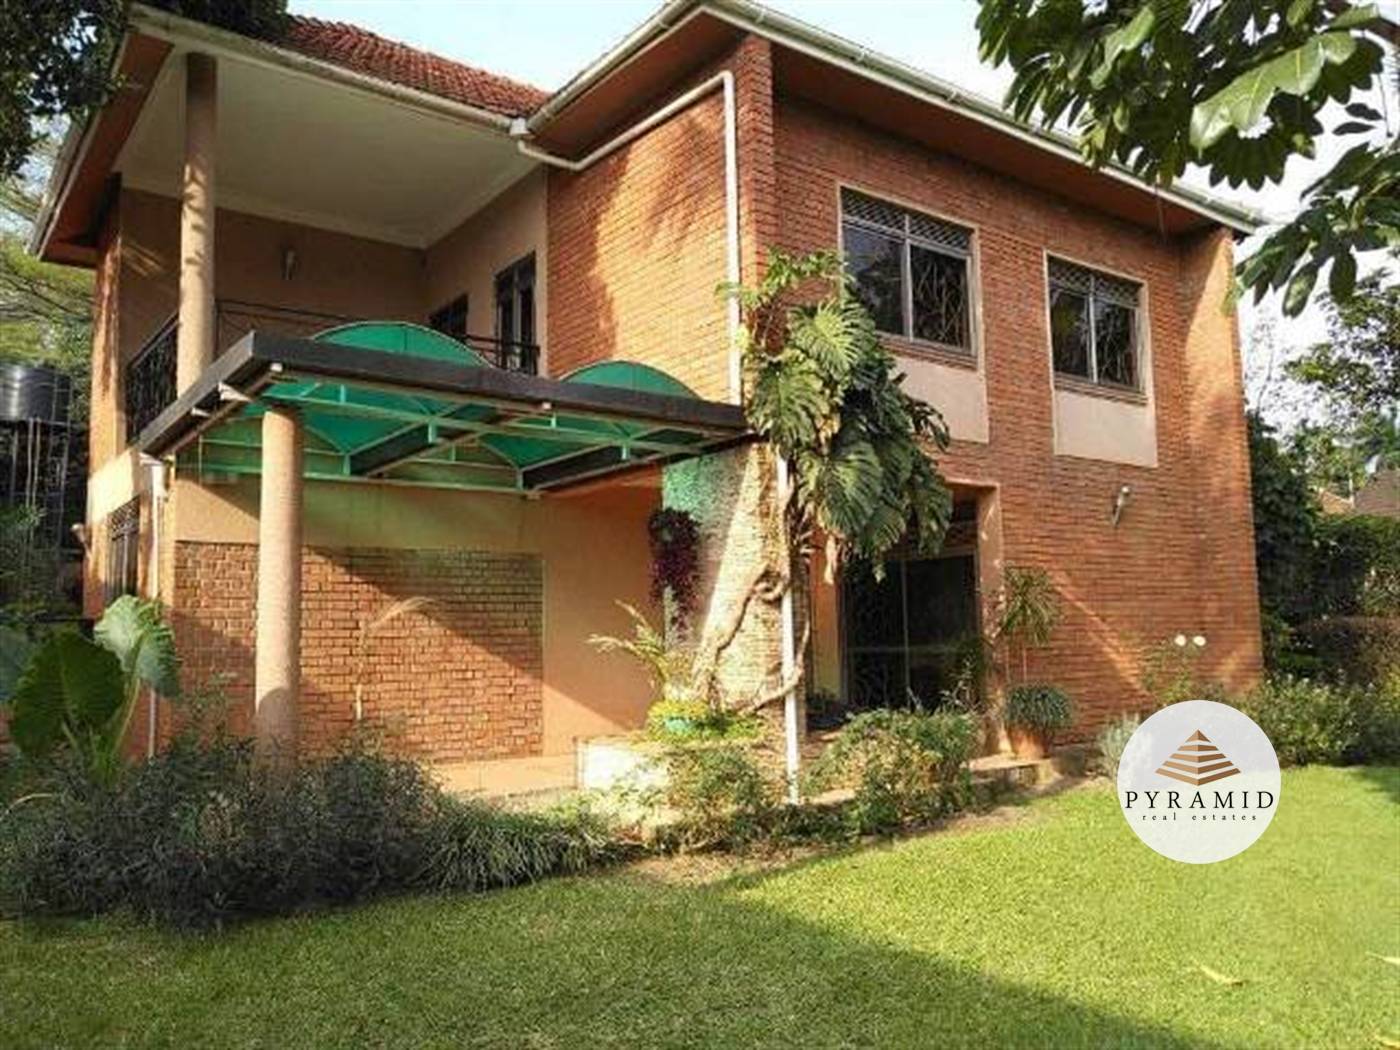 Storyed house for rent in Bugolobi Kampala